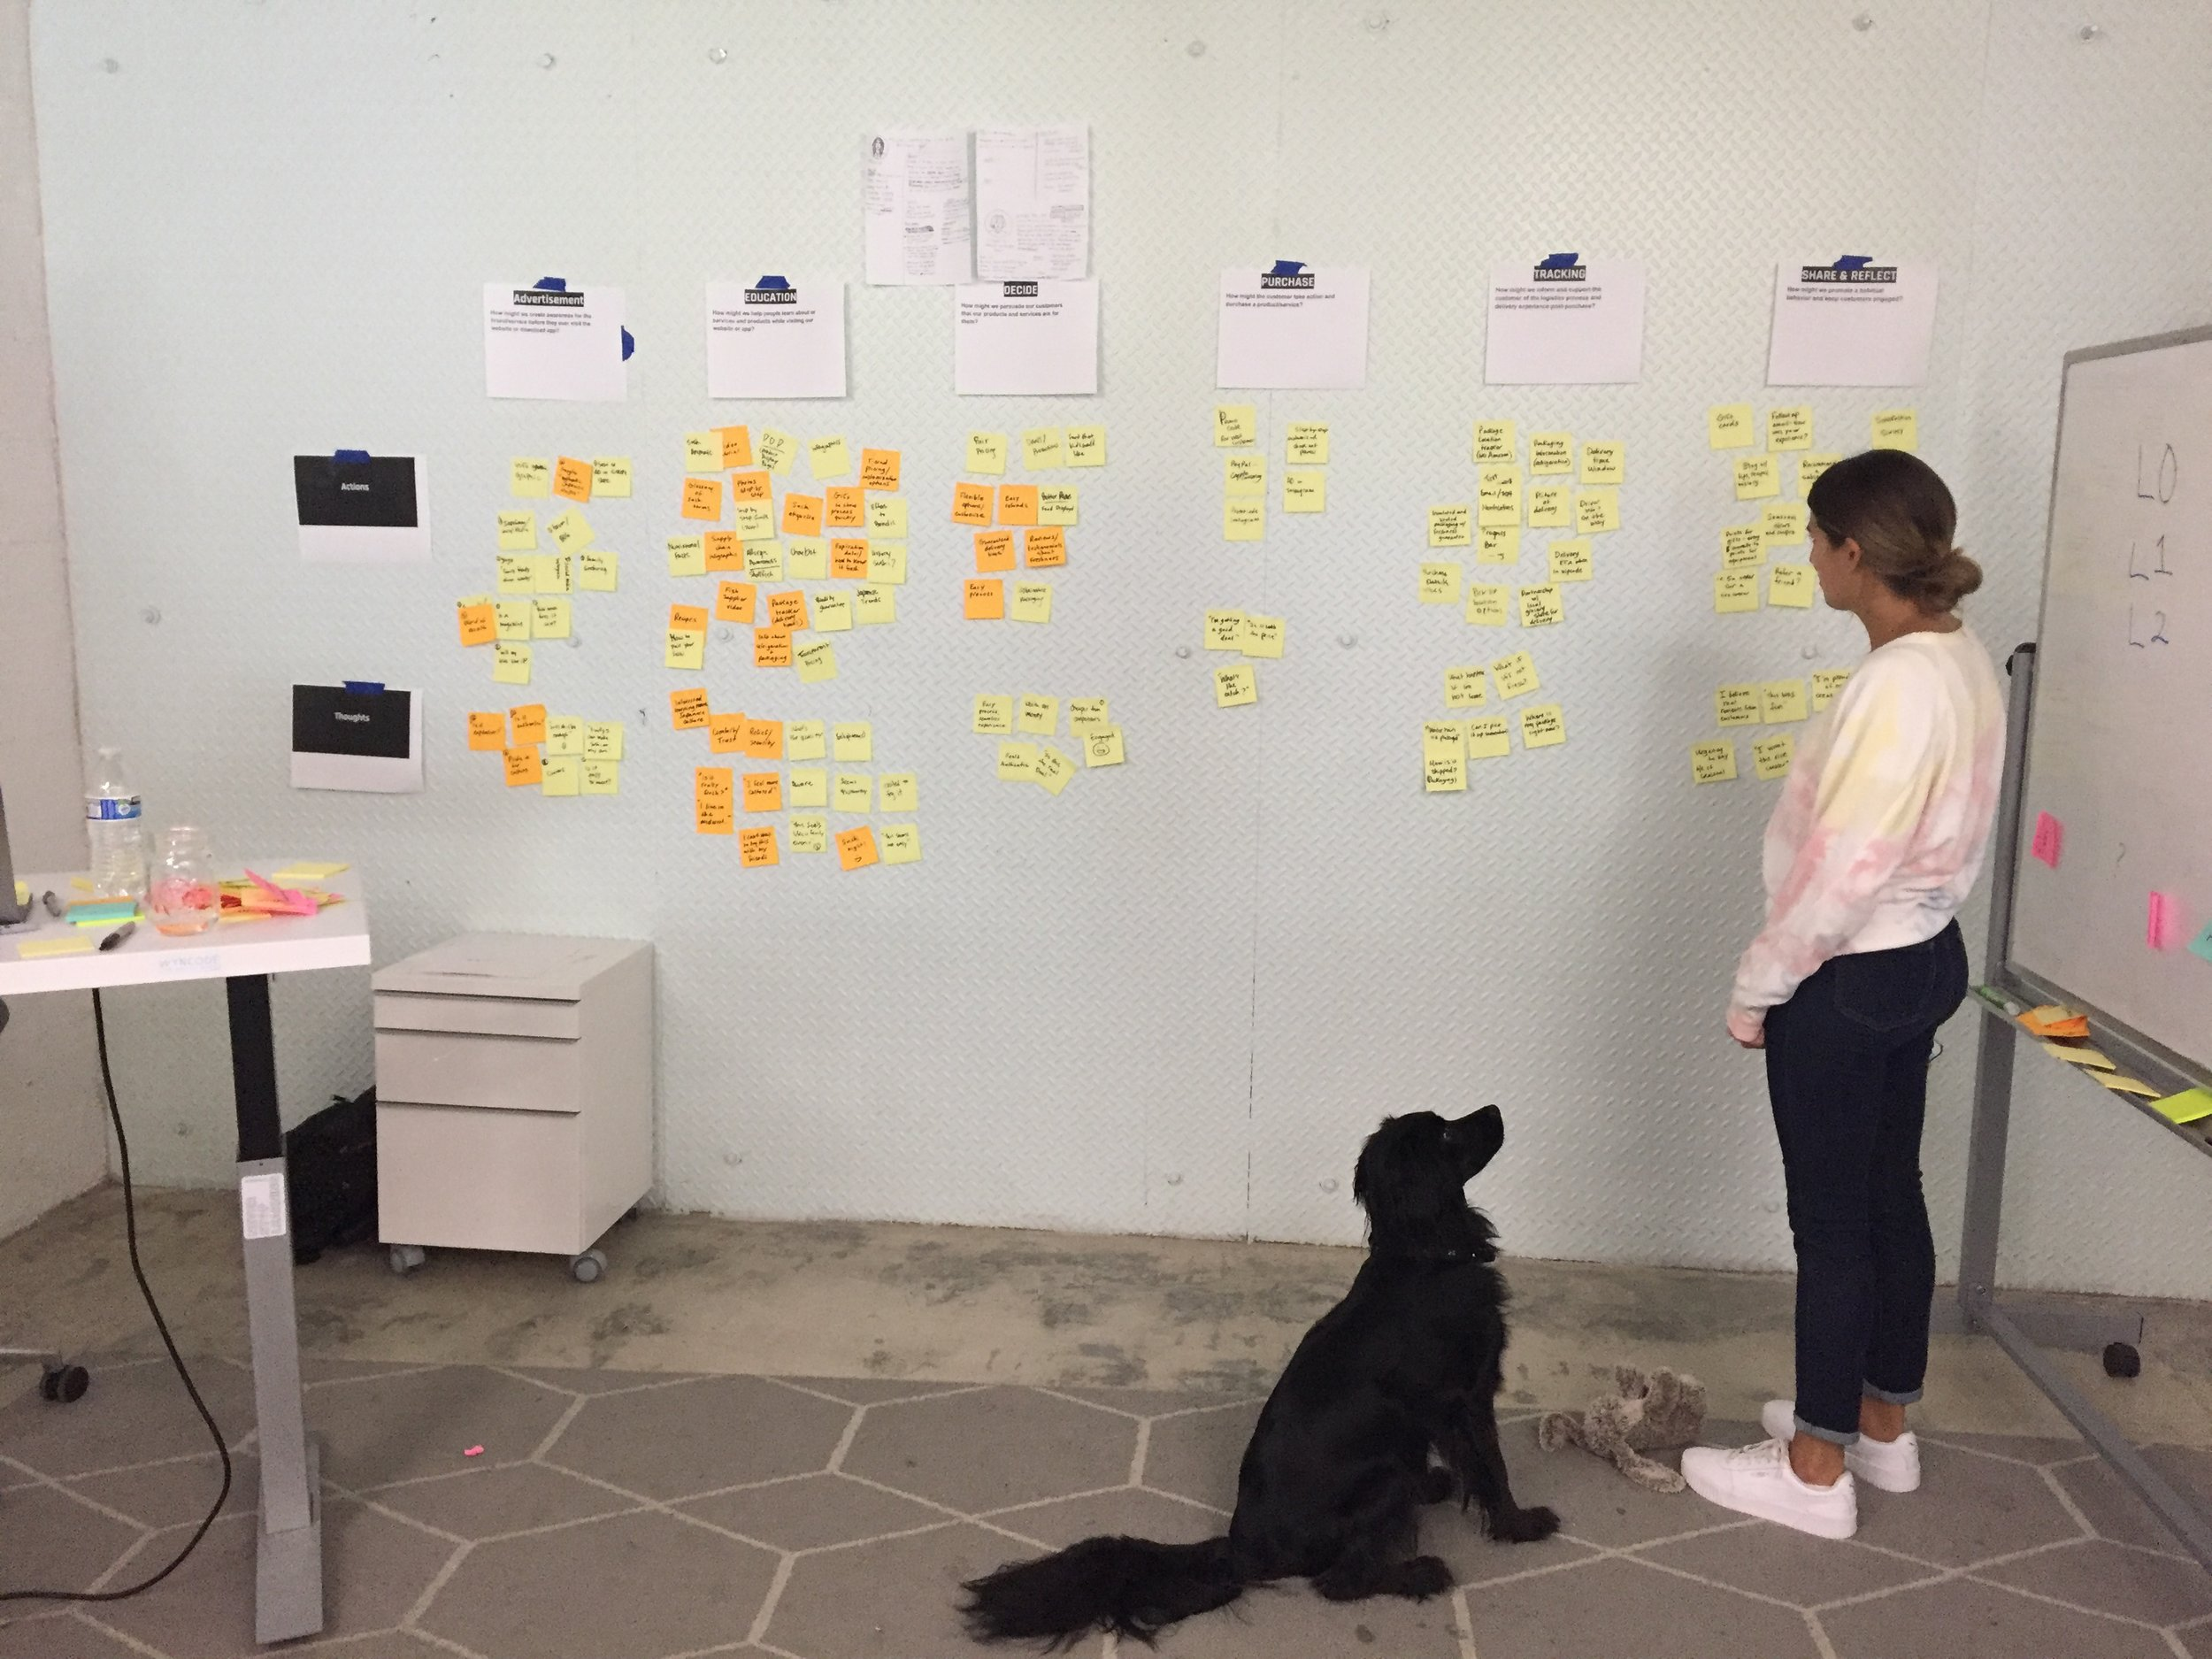 User Journey - We conducted a user journey as a team to determine the process to take our users through the product, taking into account the needs and pain points of our personas.